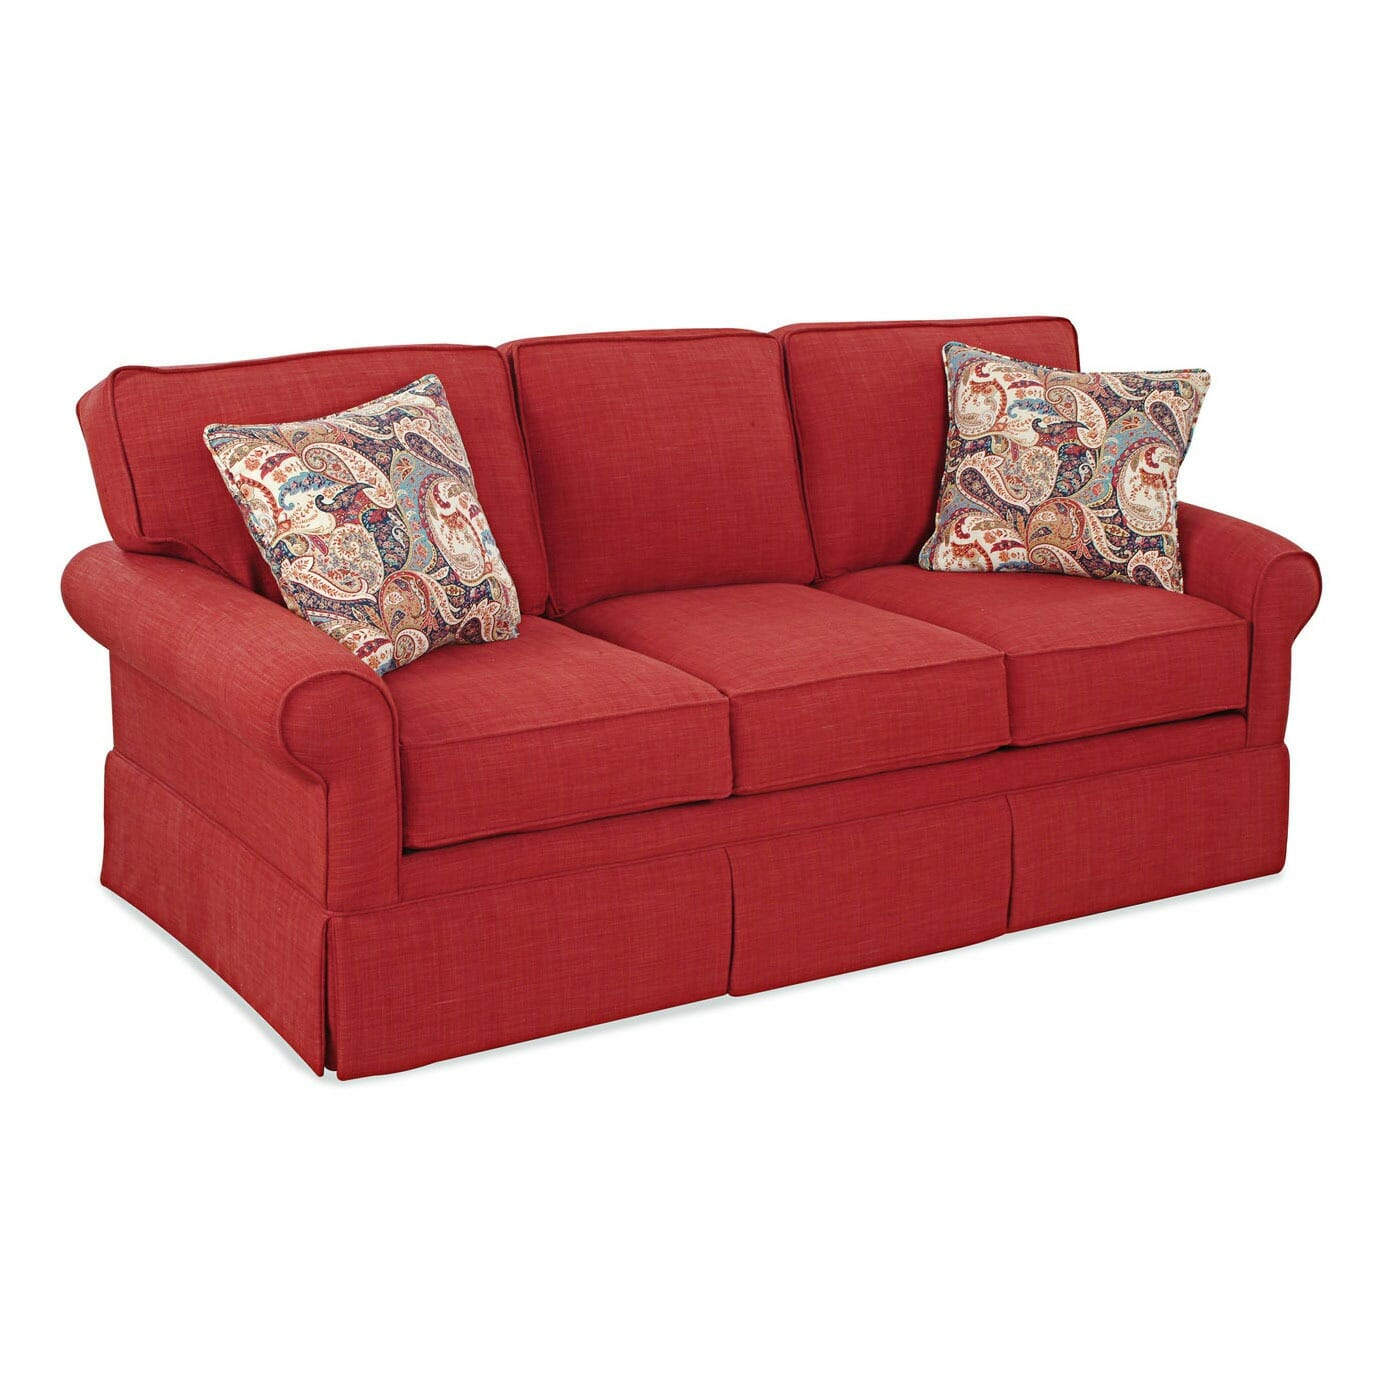 camden sofa bed how to remove oil stain from leather slipcovered cottage home